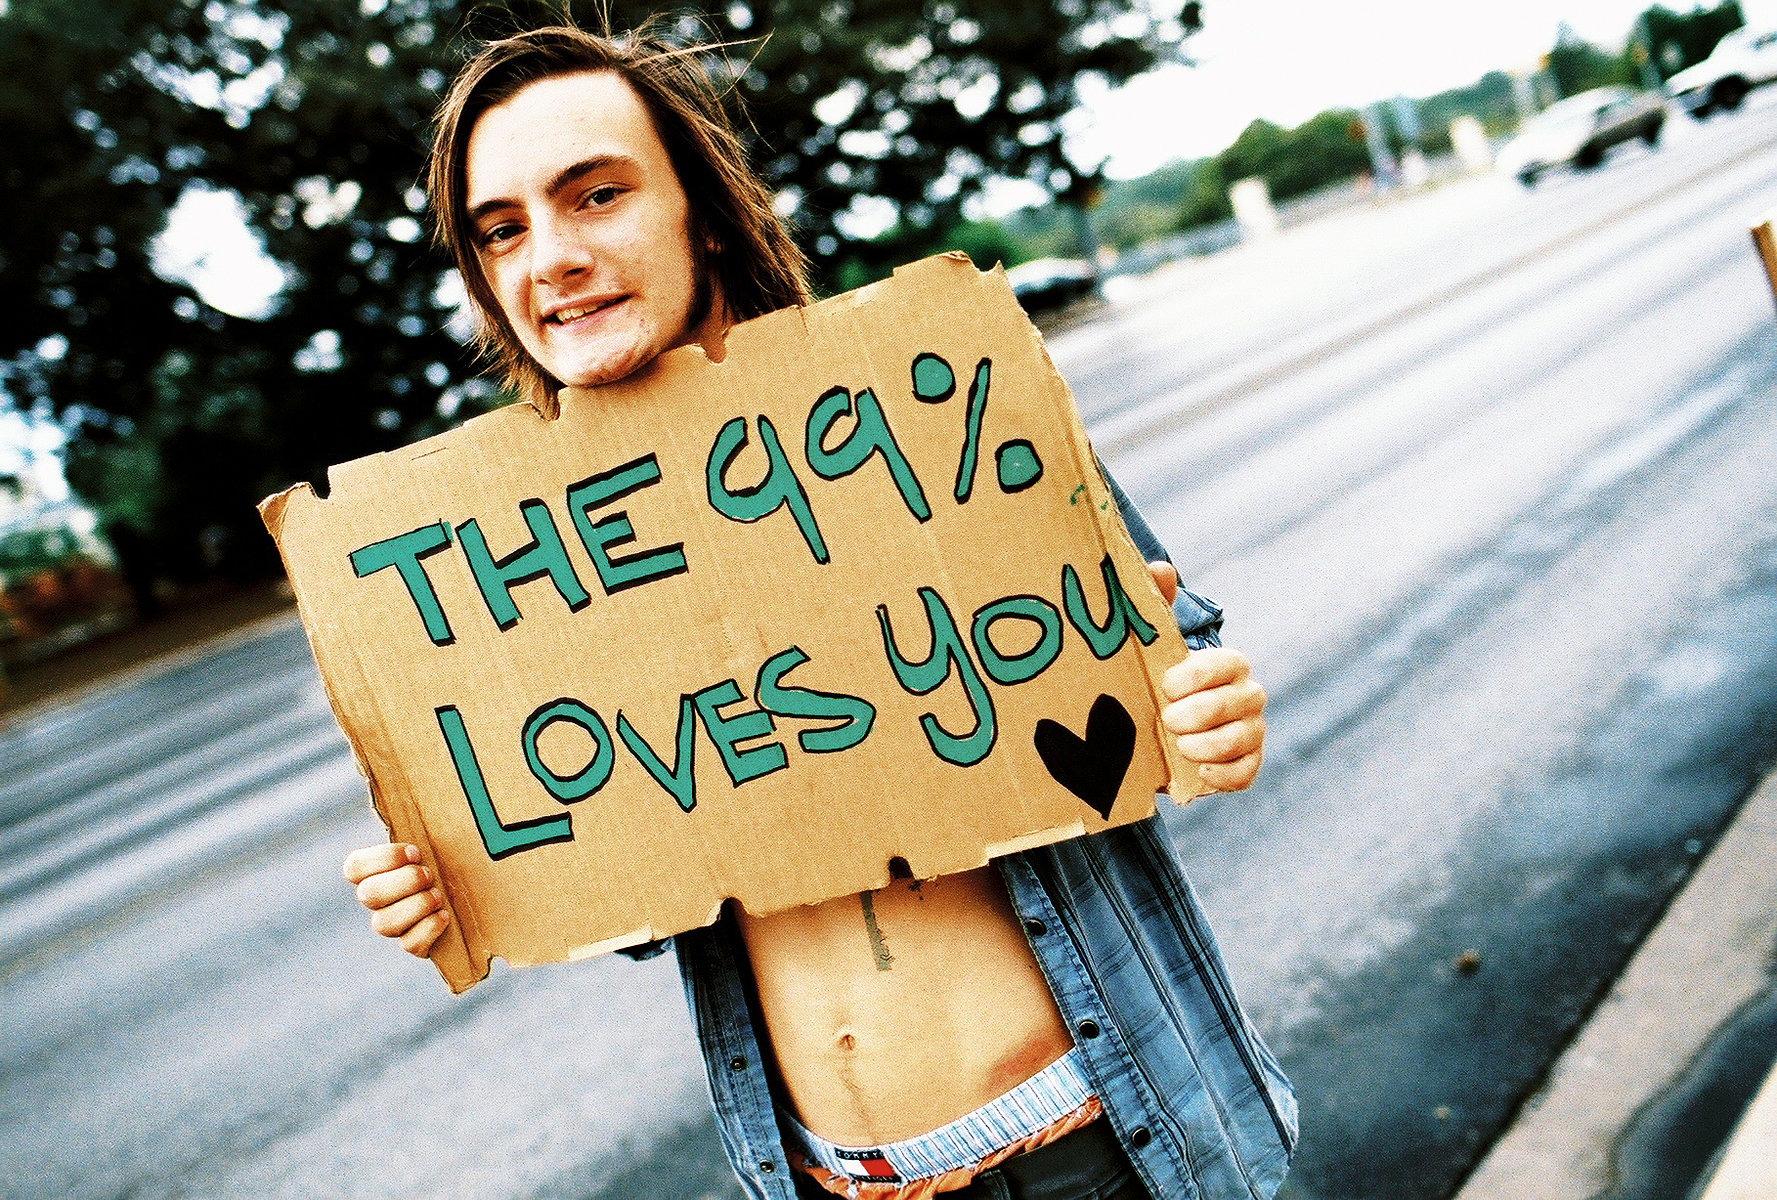 99% loves you